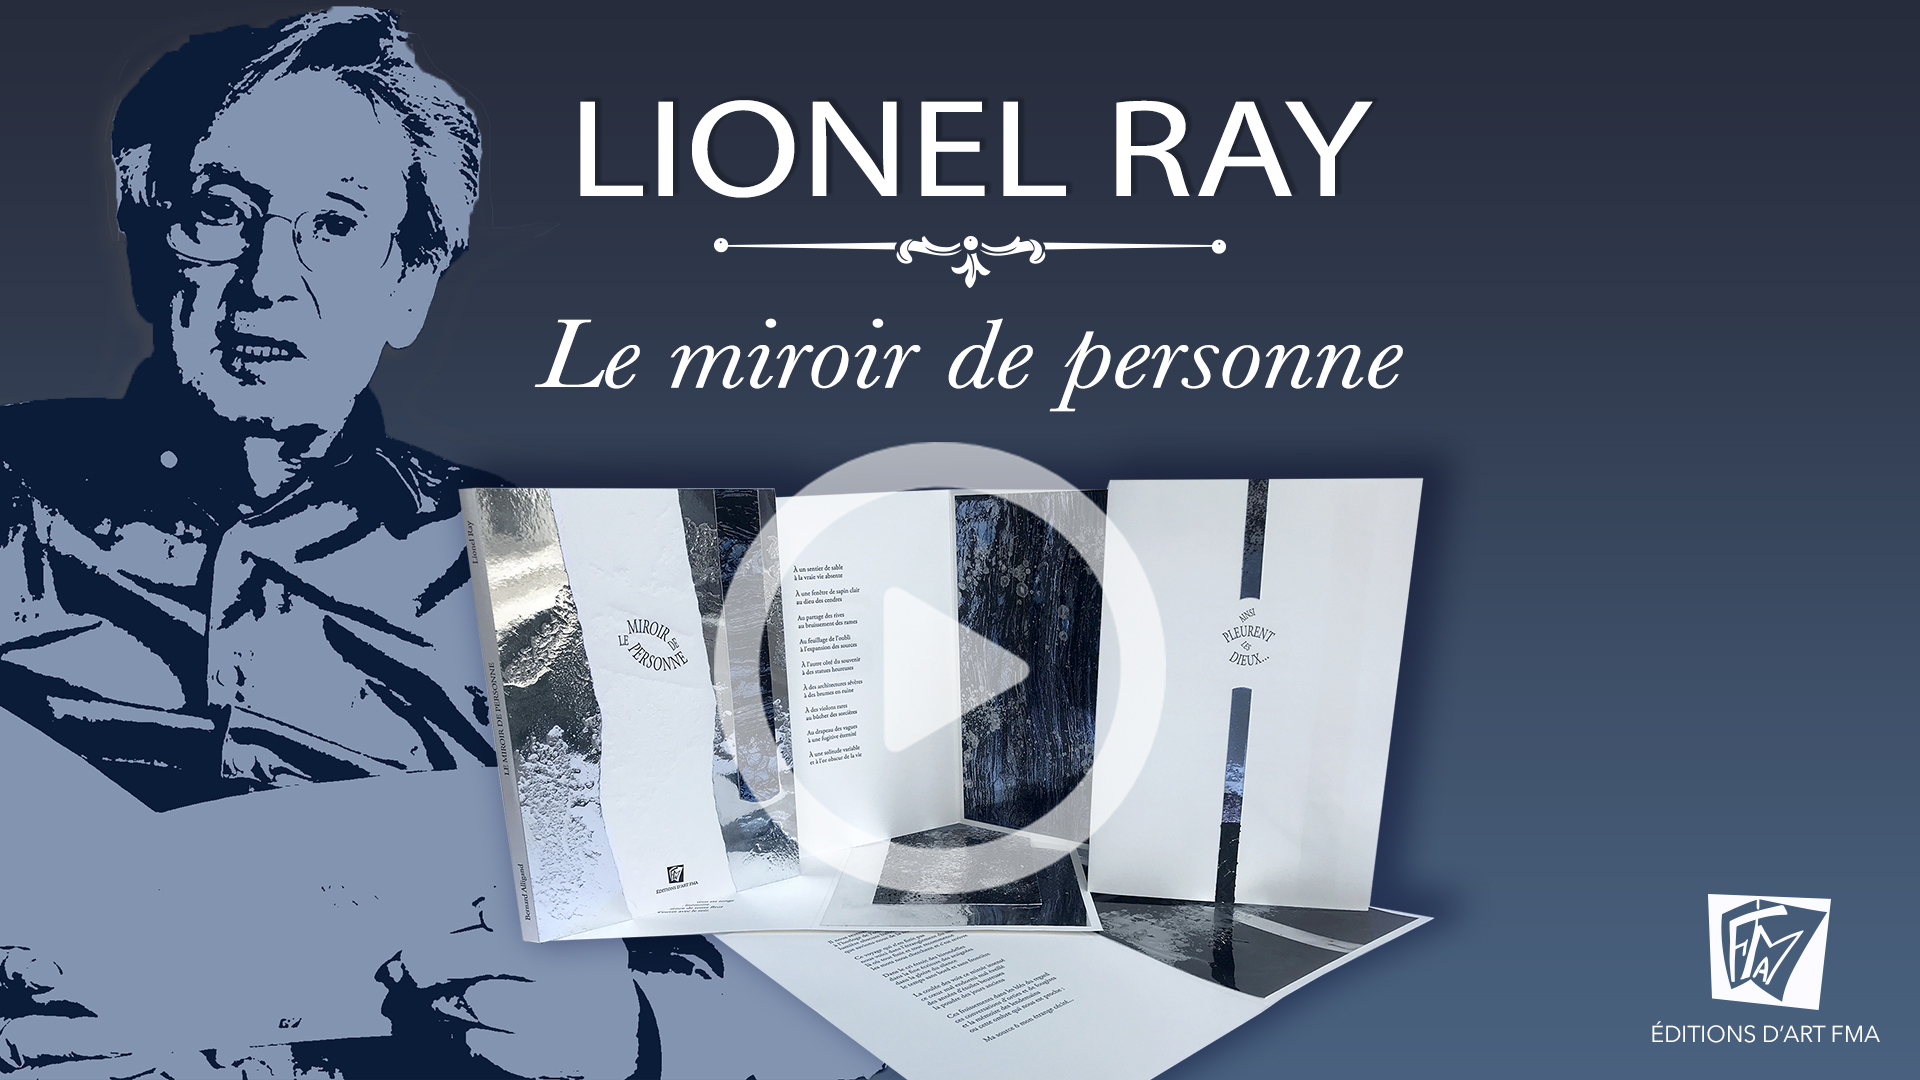 Lionel RAY